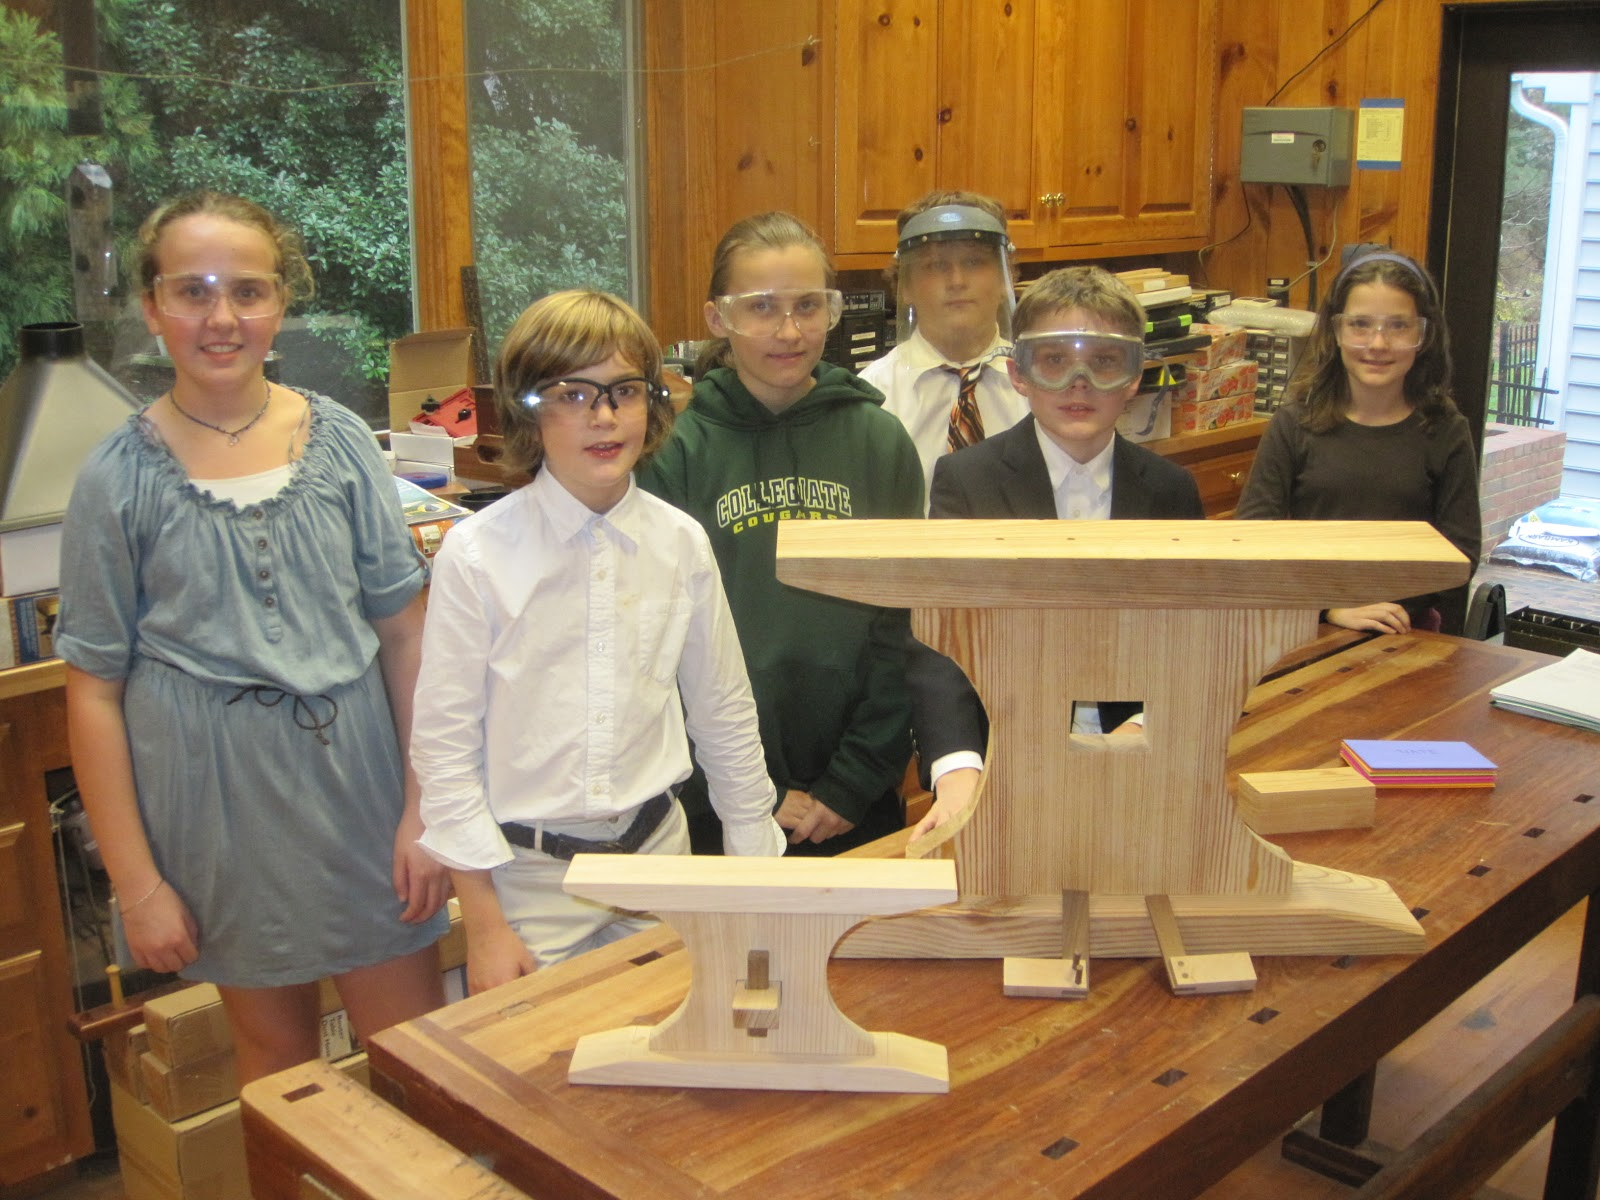 woodworking at collegiate school in richmond, va